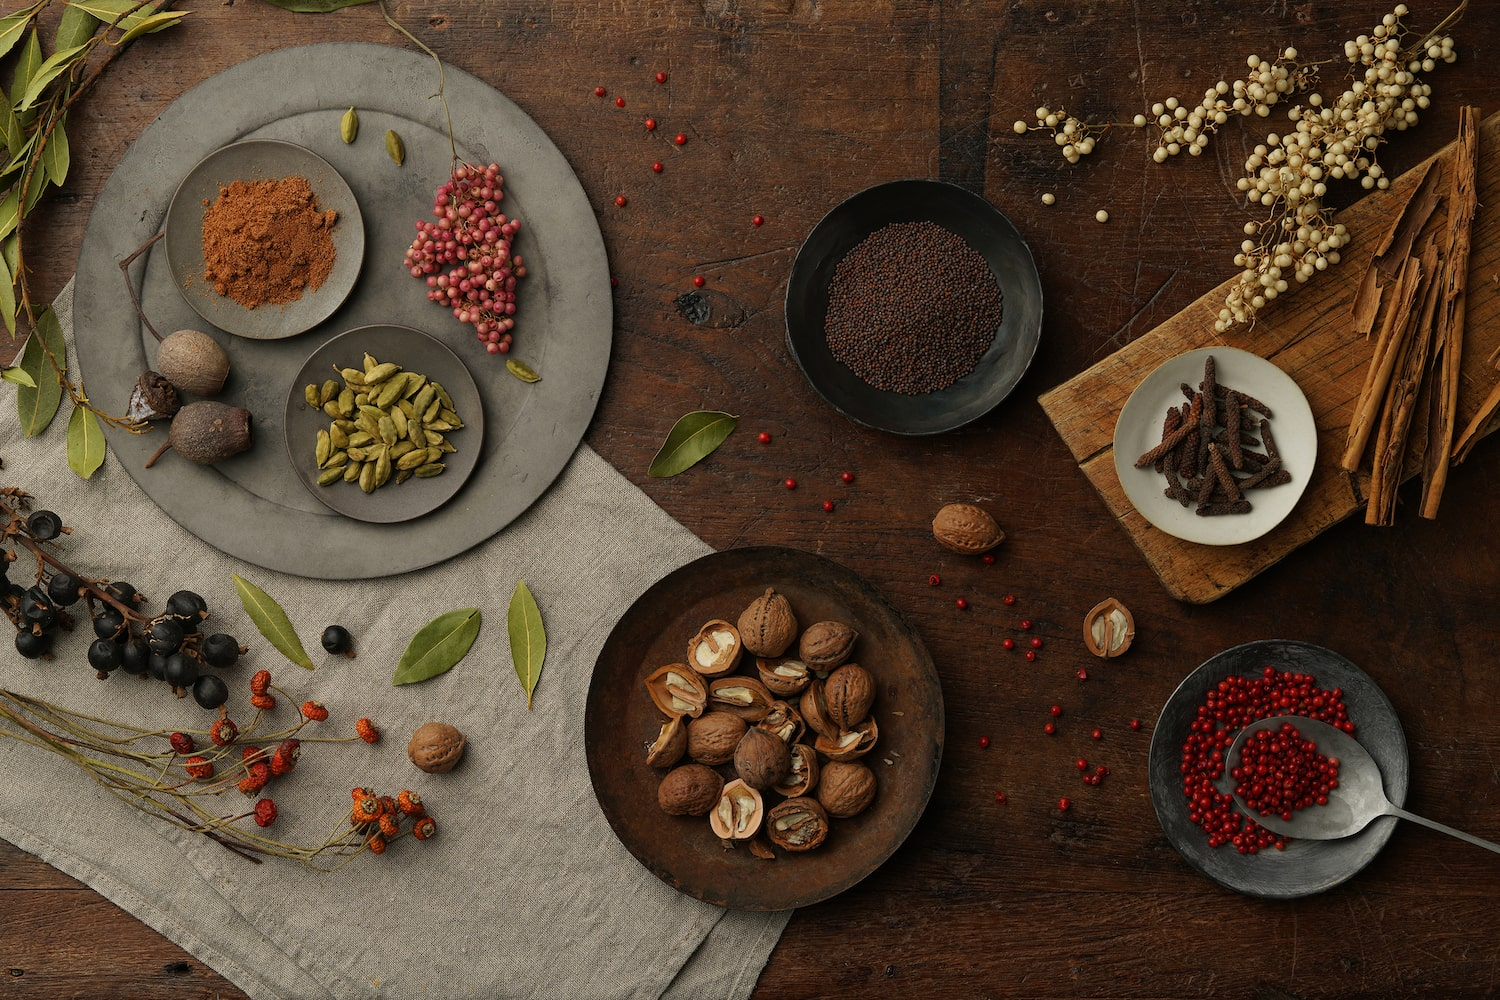 table-setting-spices-alpha-7RIV